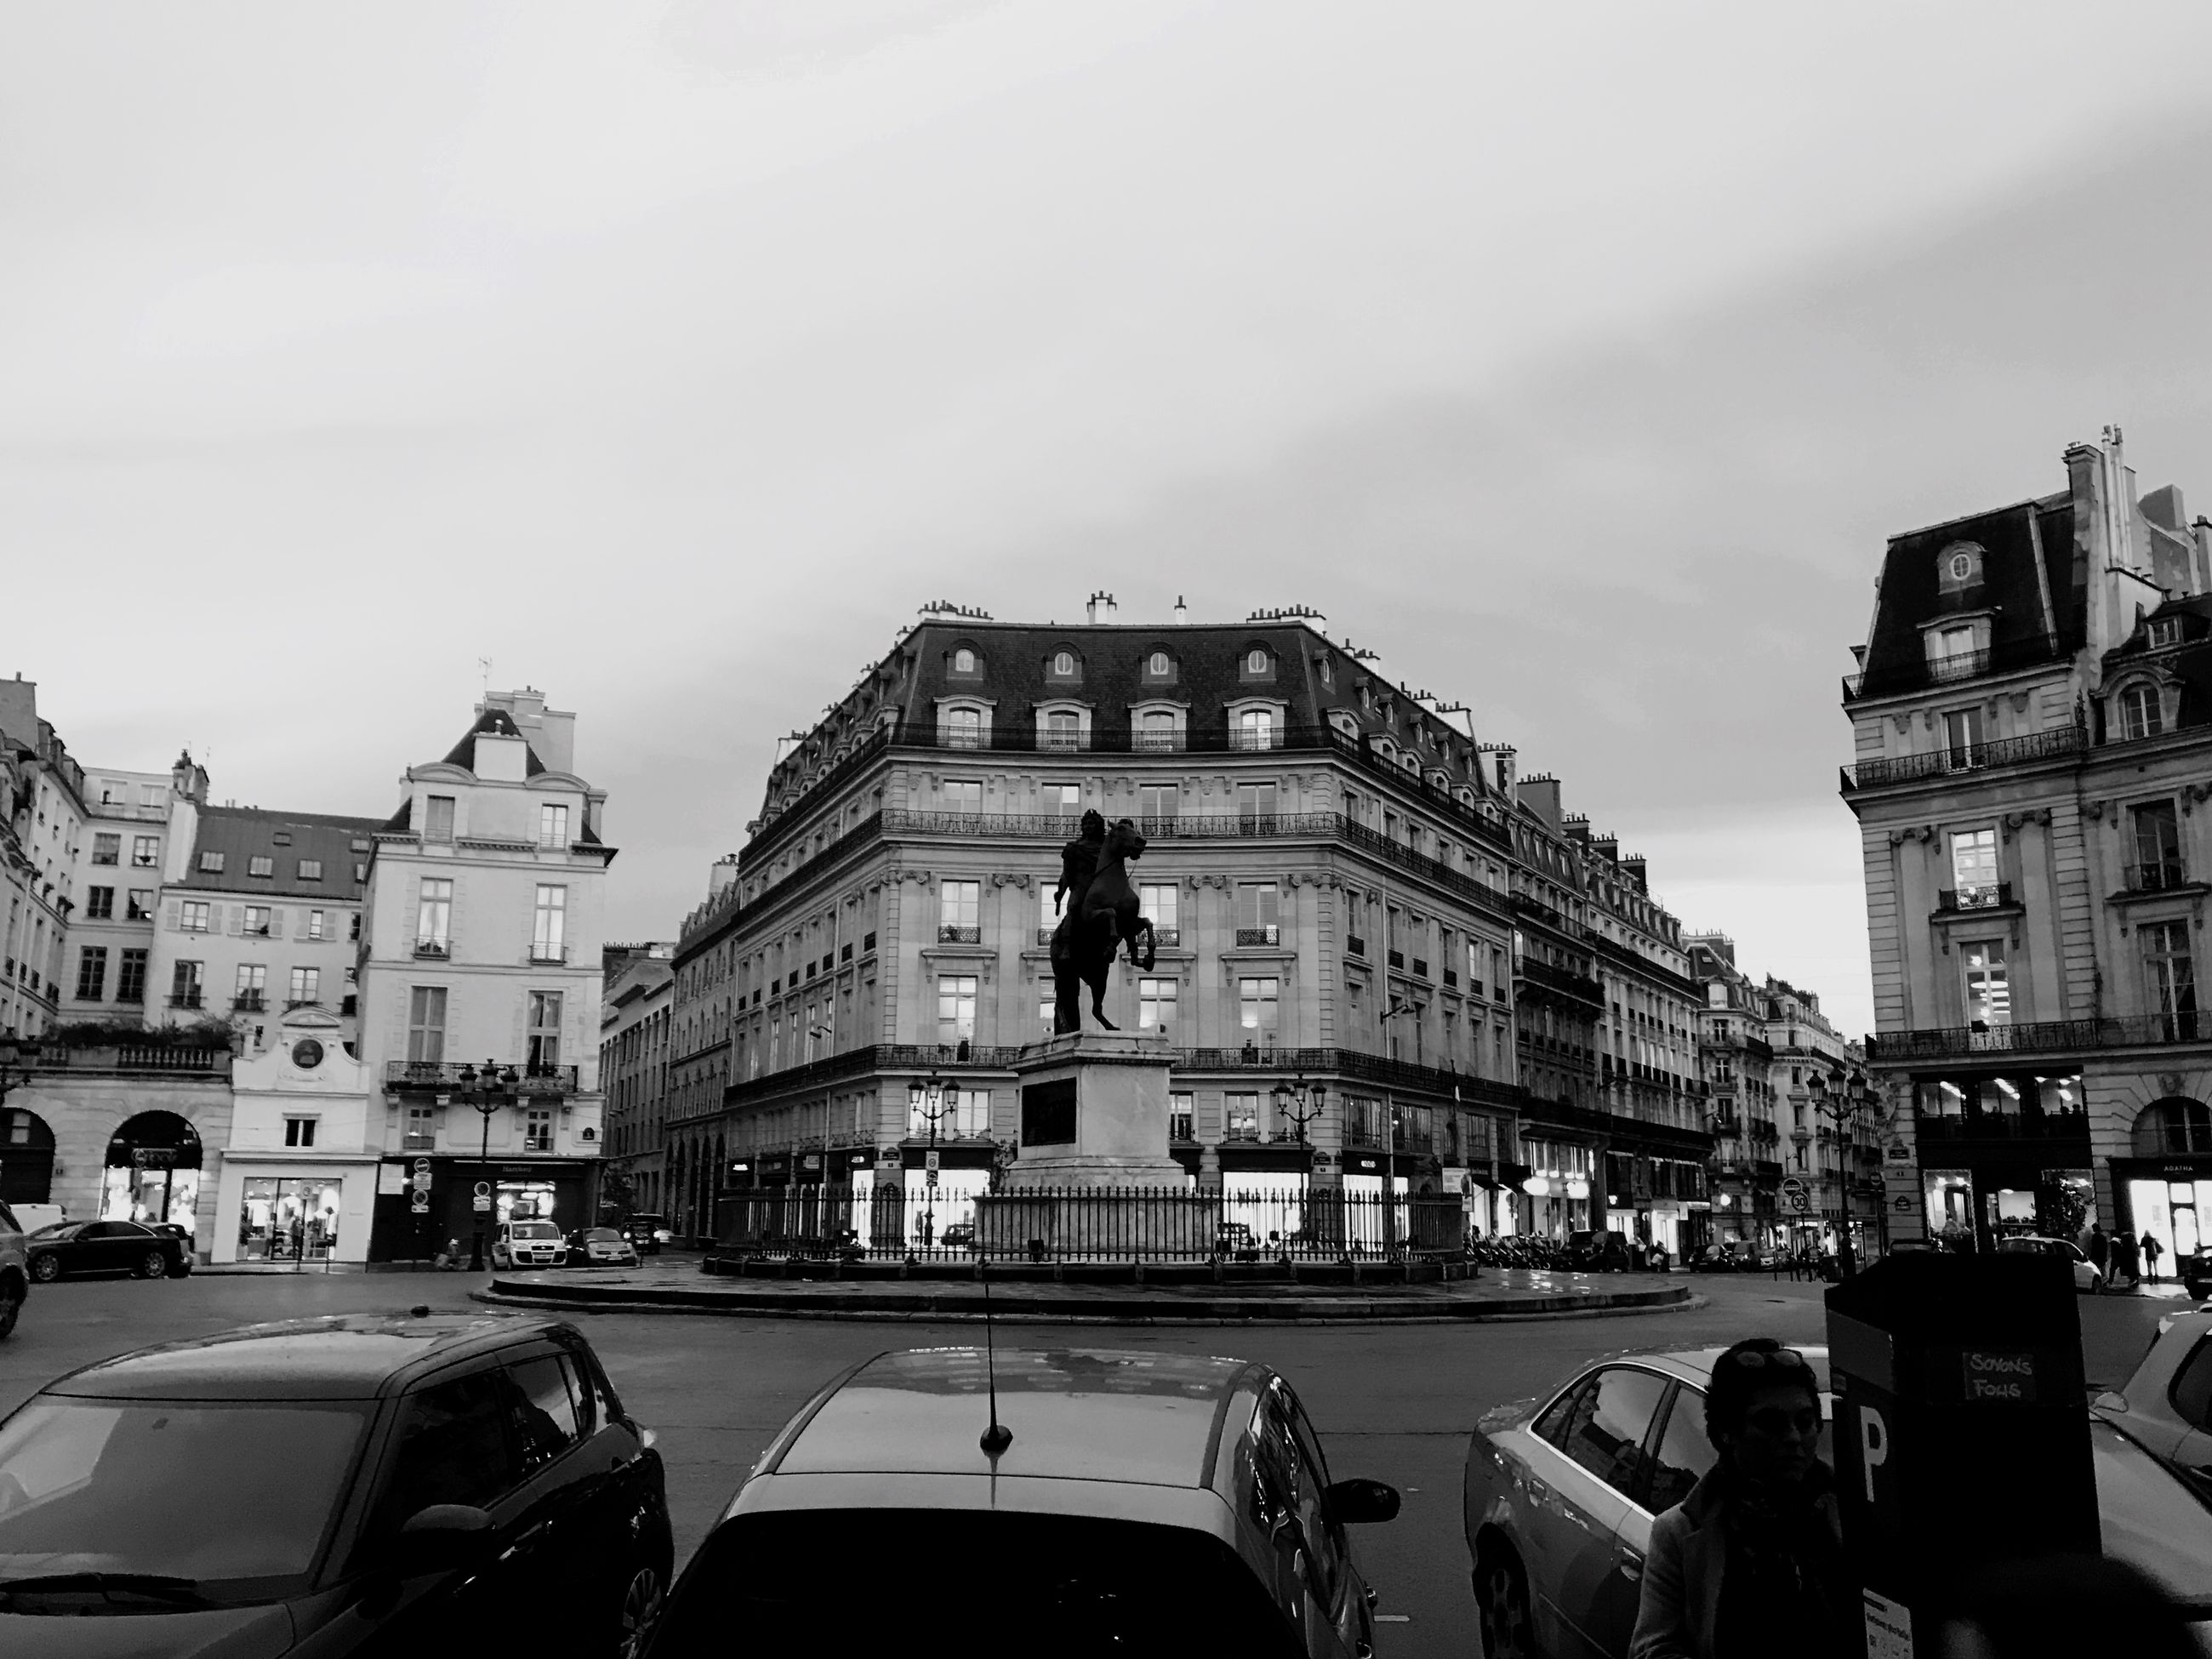 architecture, building exterior, built structure, car, land vehicle, mode of transport, sky, statue, transportation, city, travel, travel destinations, outdoors, sculpture, day, large group of people, real people, people